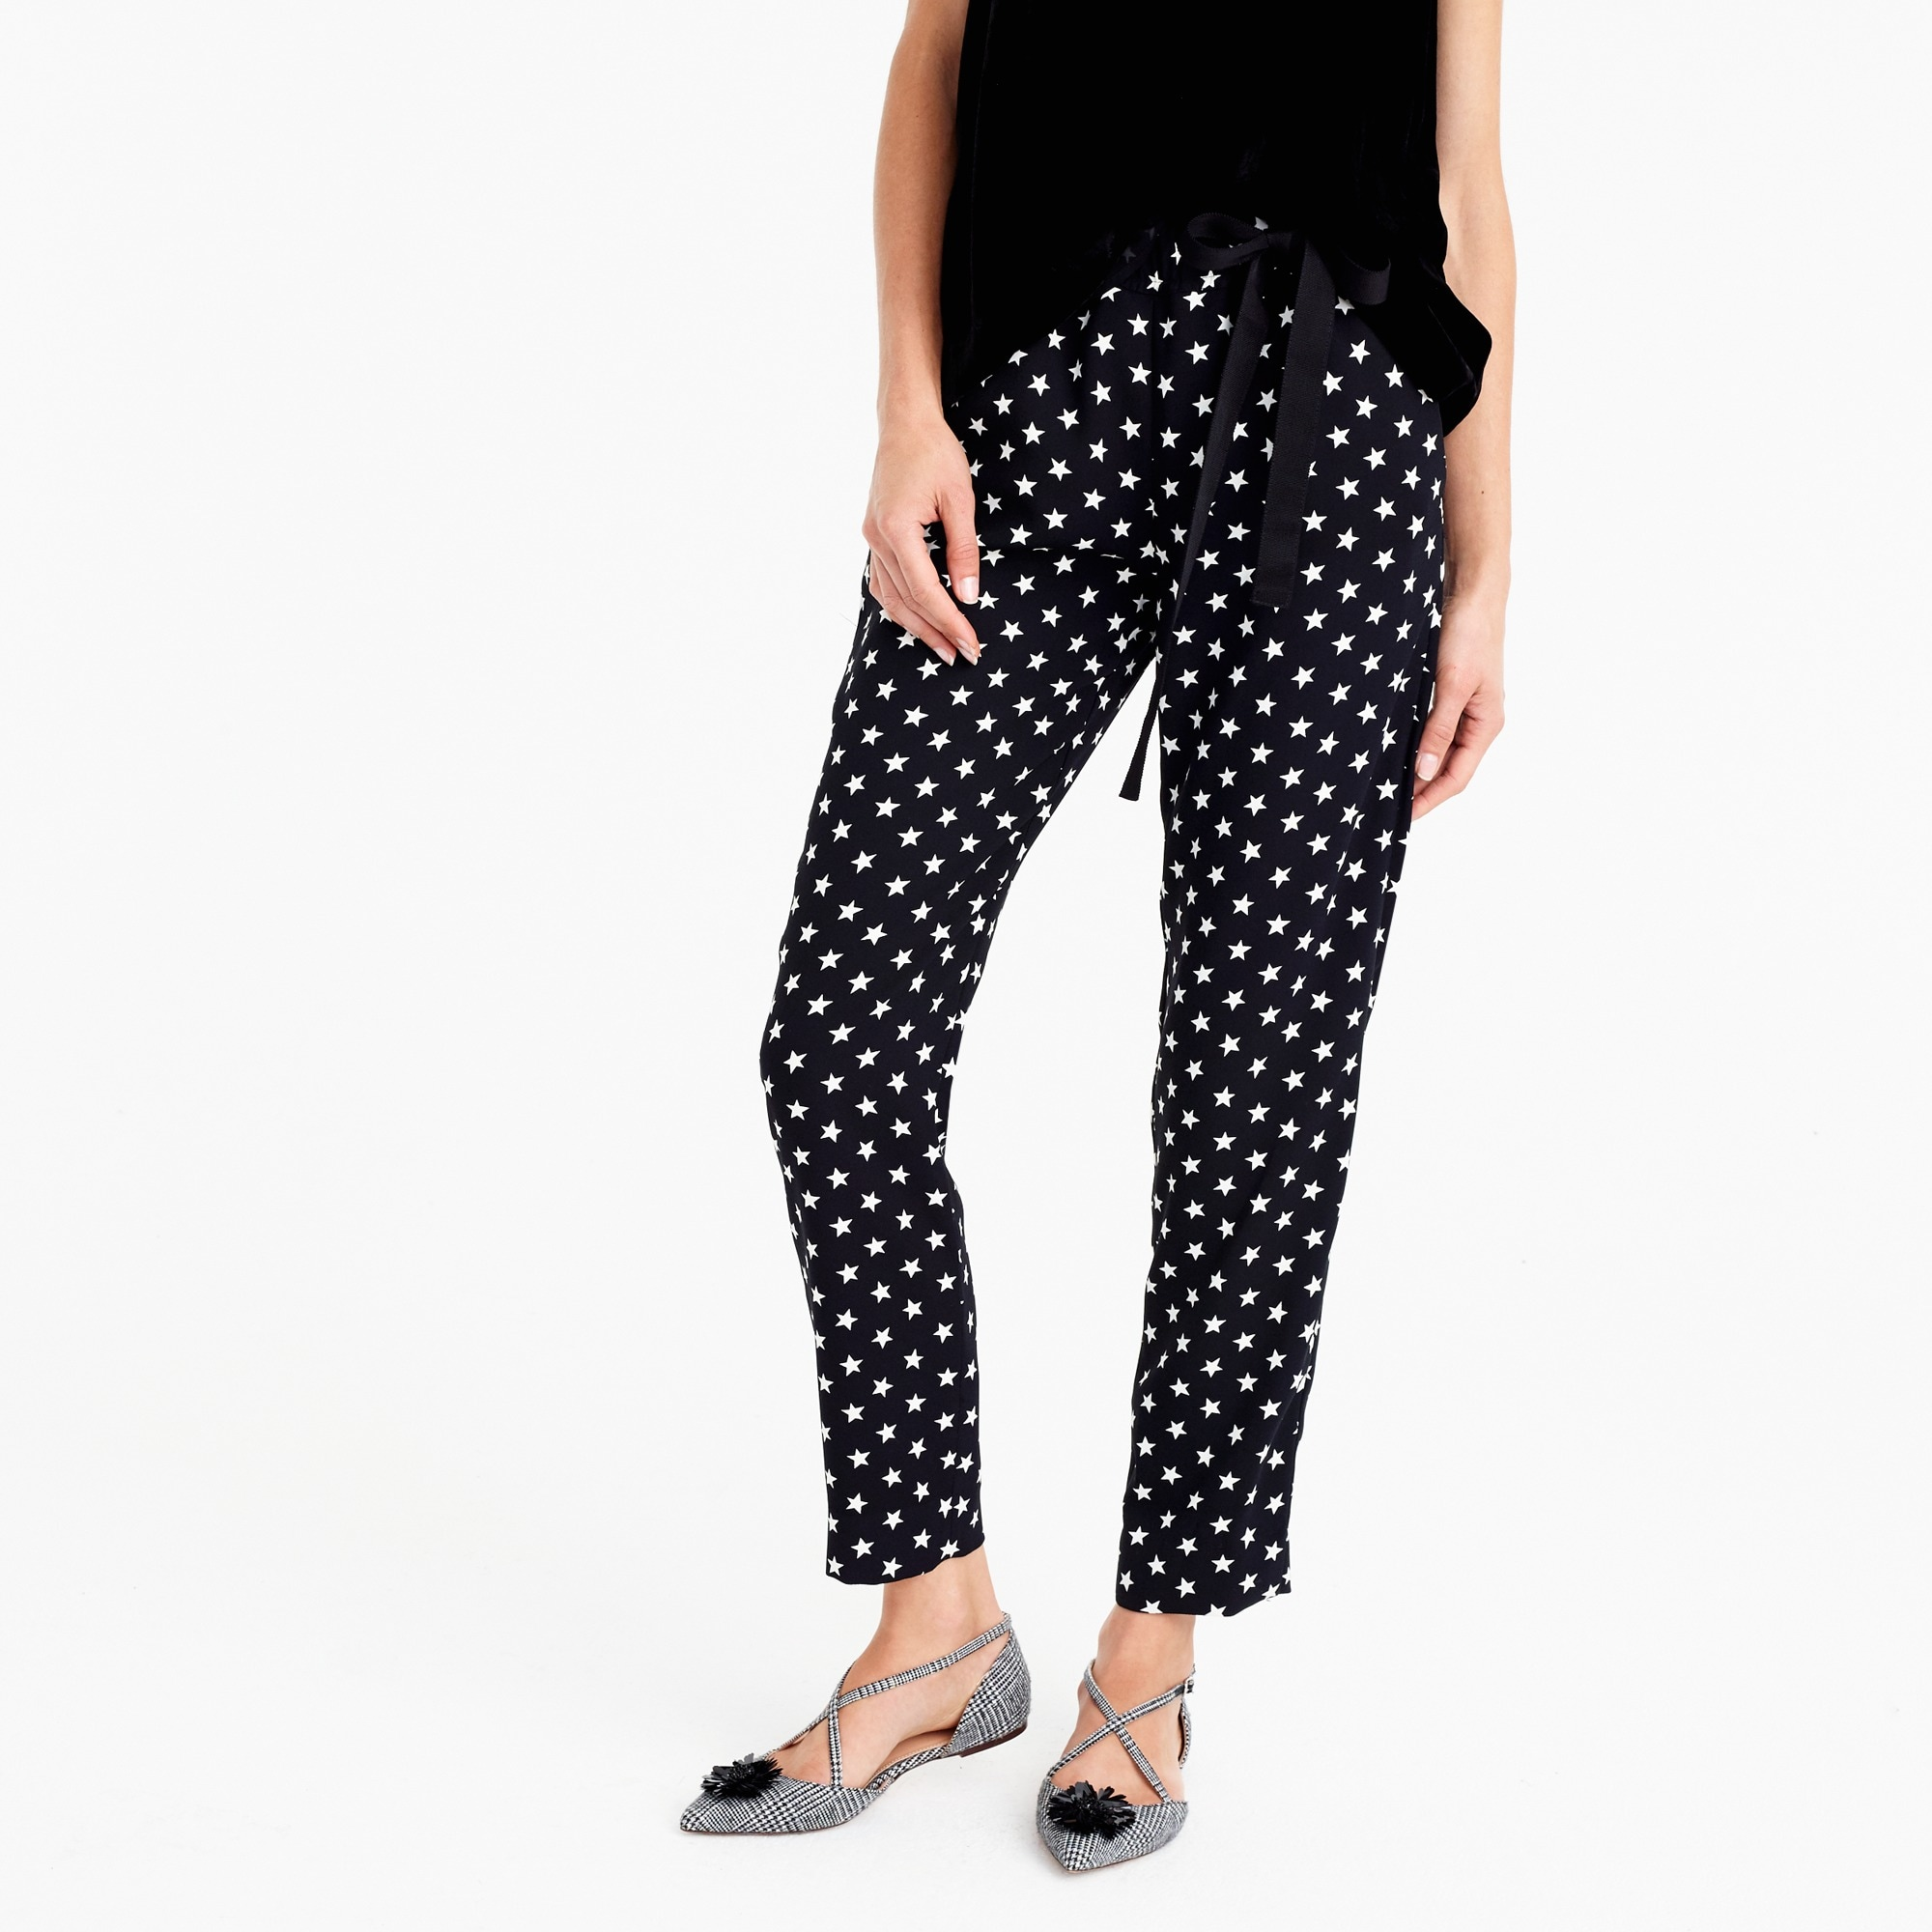 Image 1 for Tie-waist pant in star-printed crepe